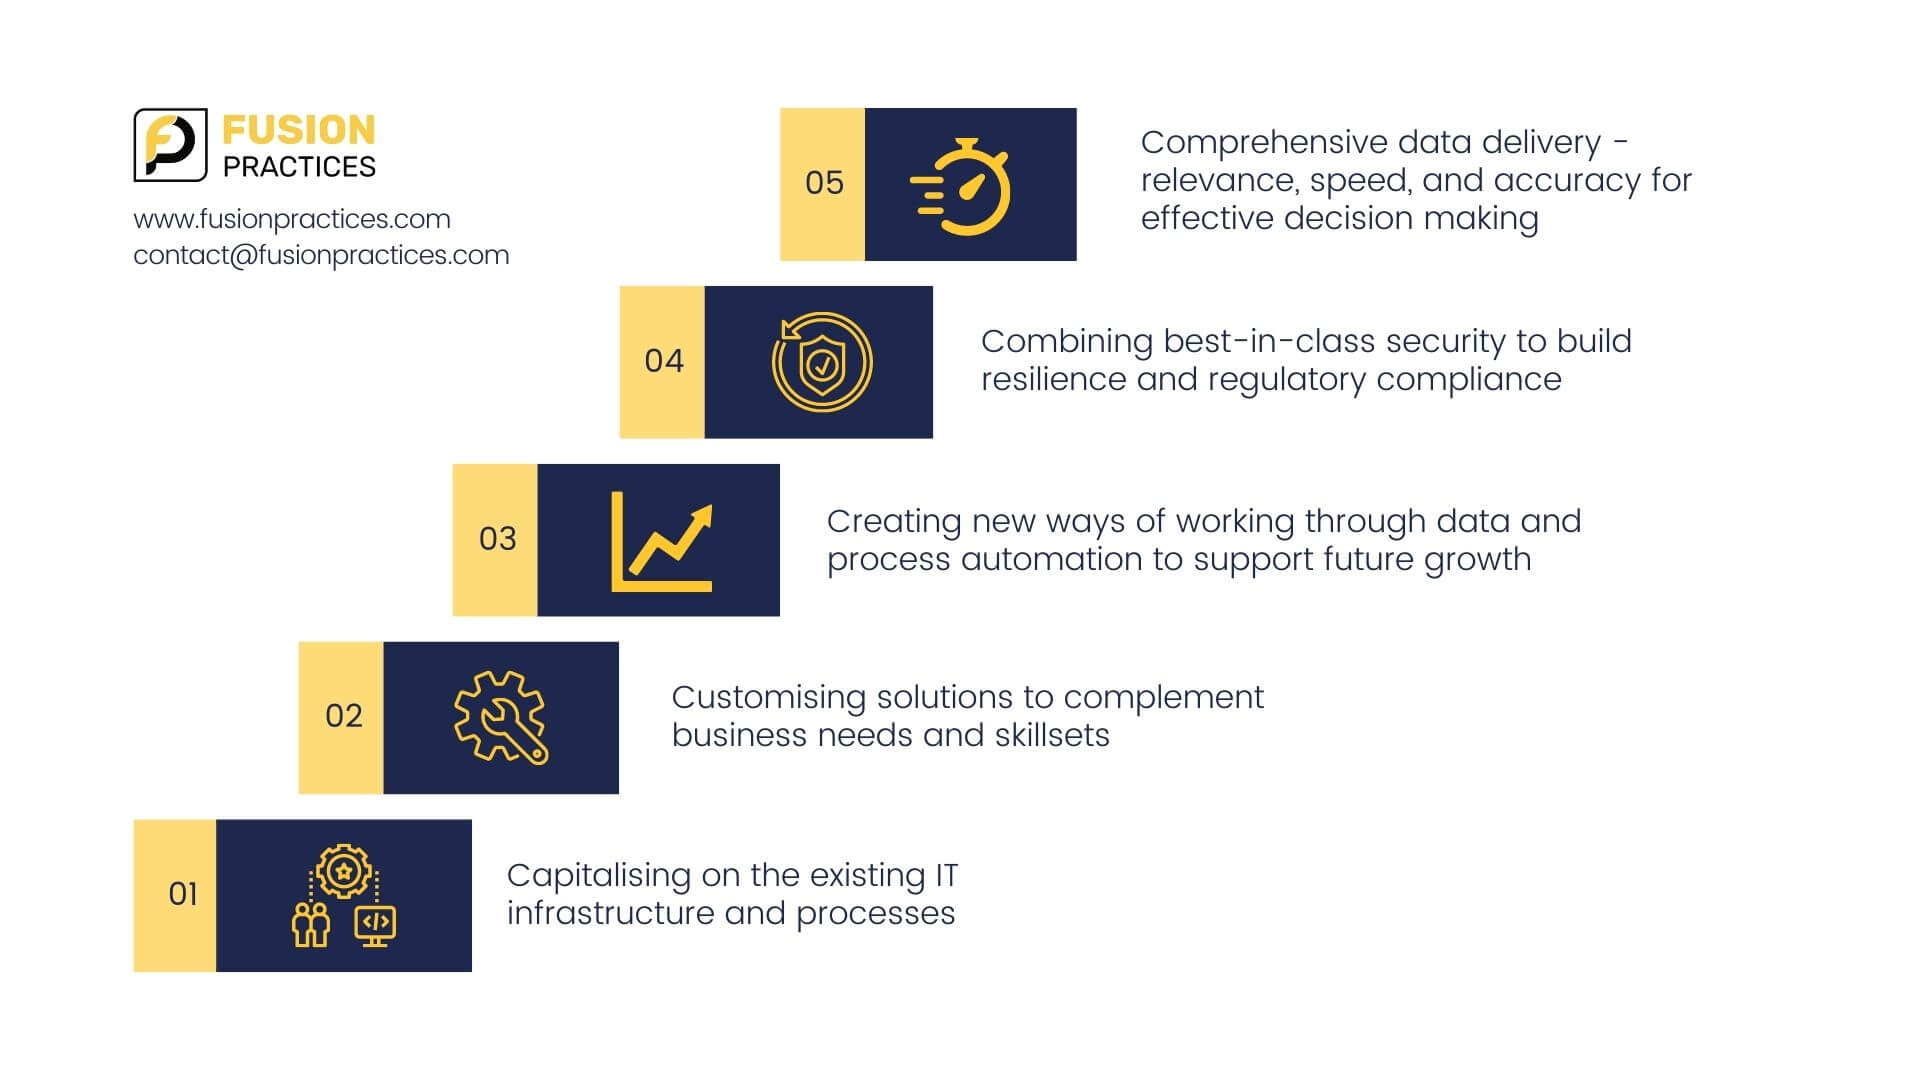 Capitalising on the existing IT infrastructure and processes Customising solutions to complement business needs and skillsets Creating new ways of working through data and process automation to support future growth Combining best-in-class security to build resilience and regulatory compliance Comprehensive data delivery-relevance, speed, and accuracy for effective decision making